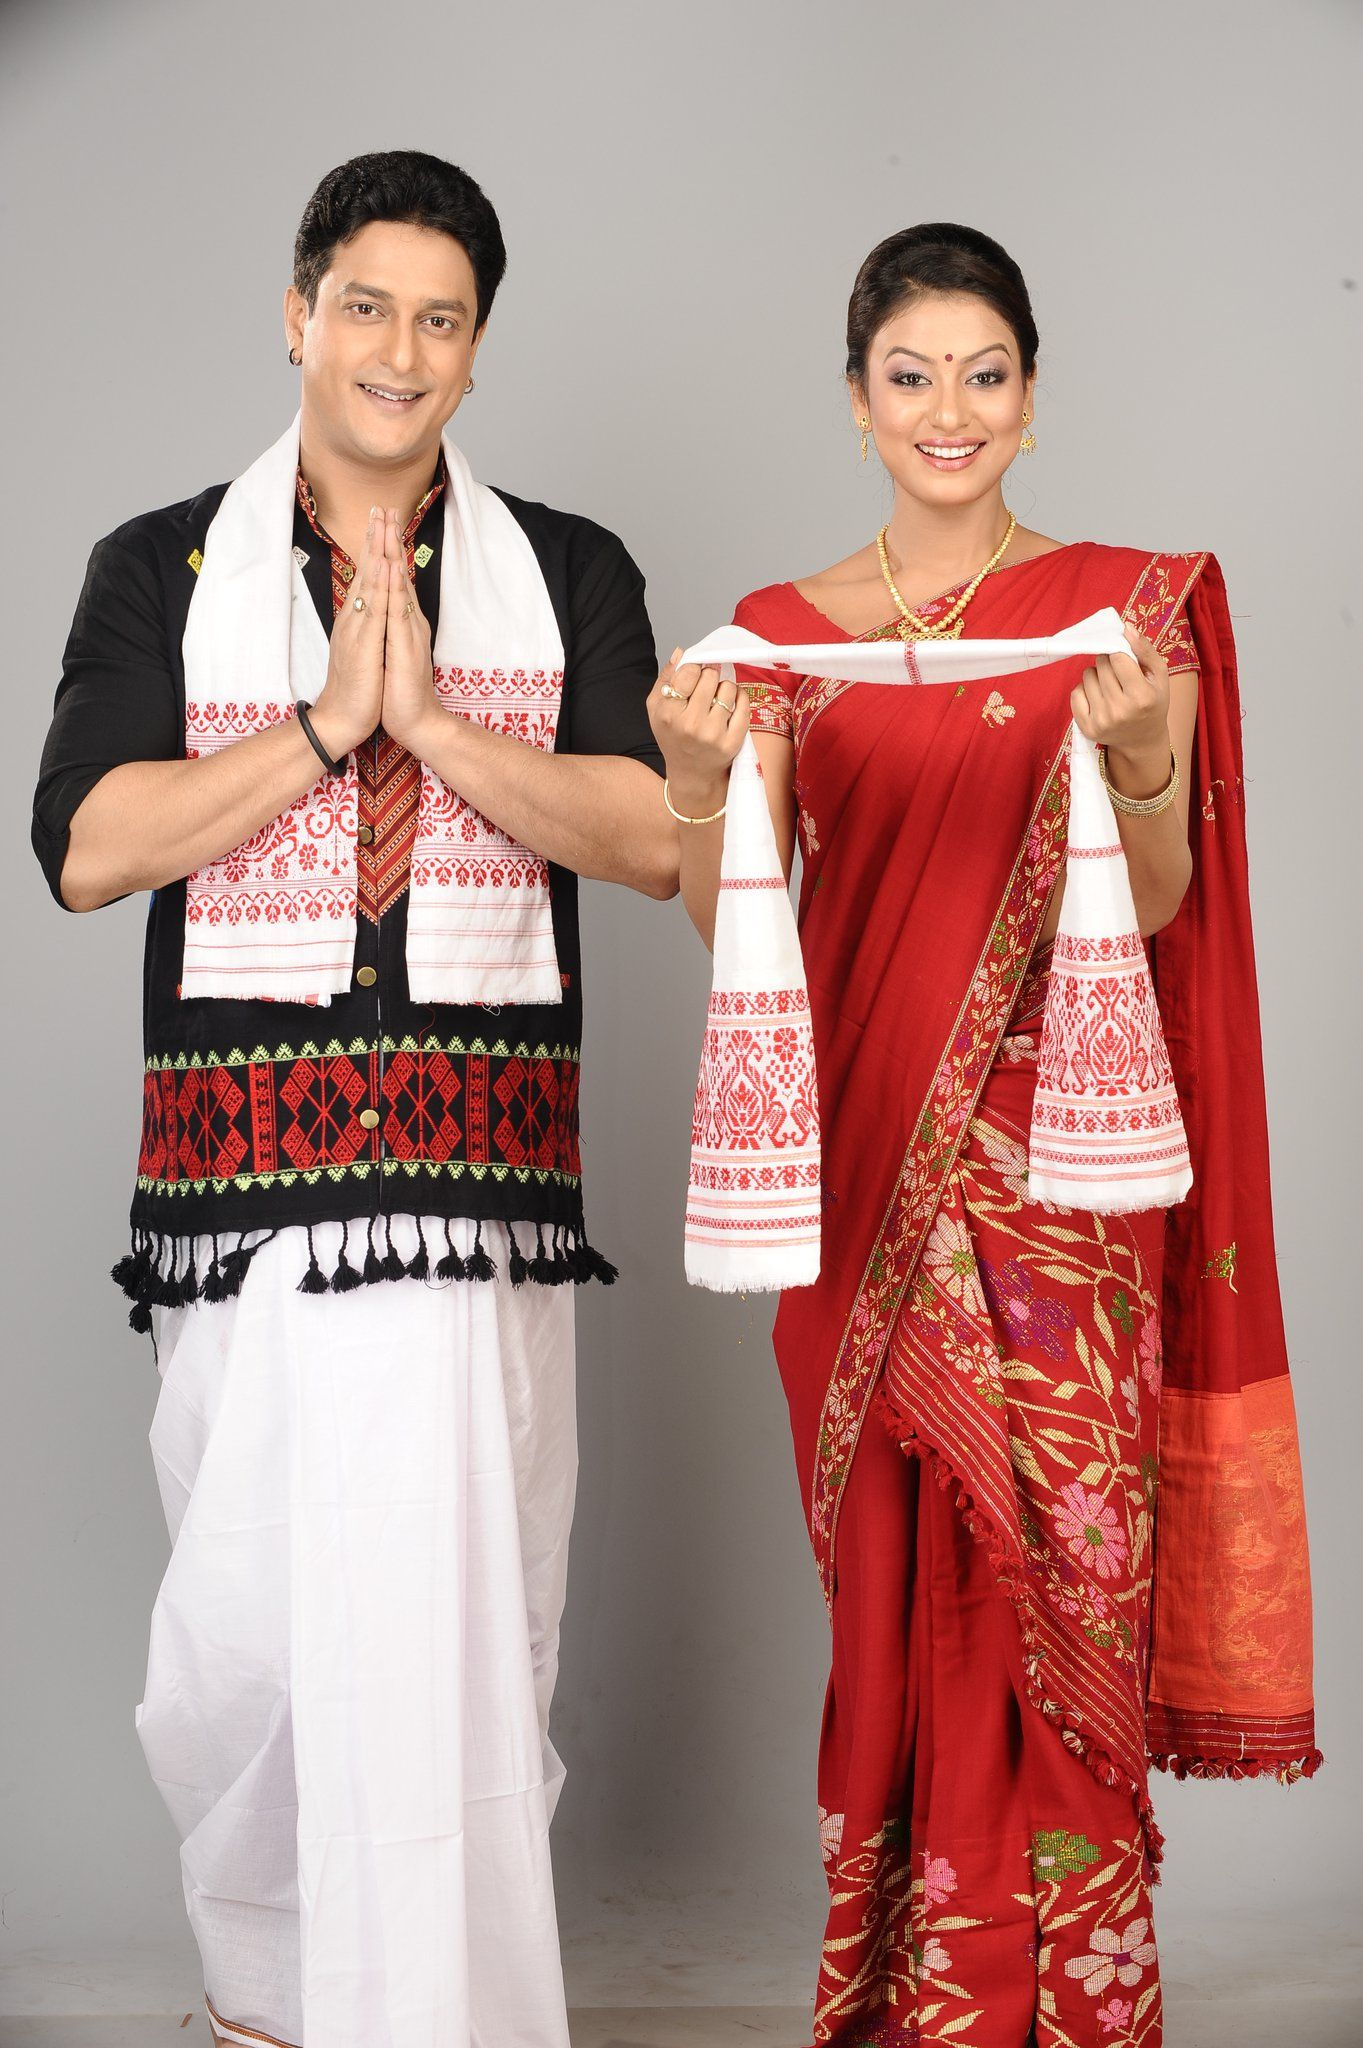 What is the Indian traditional costume?